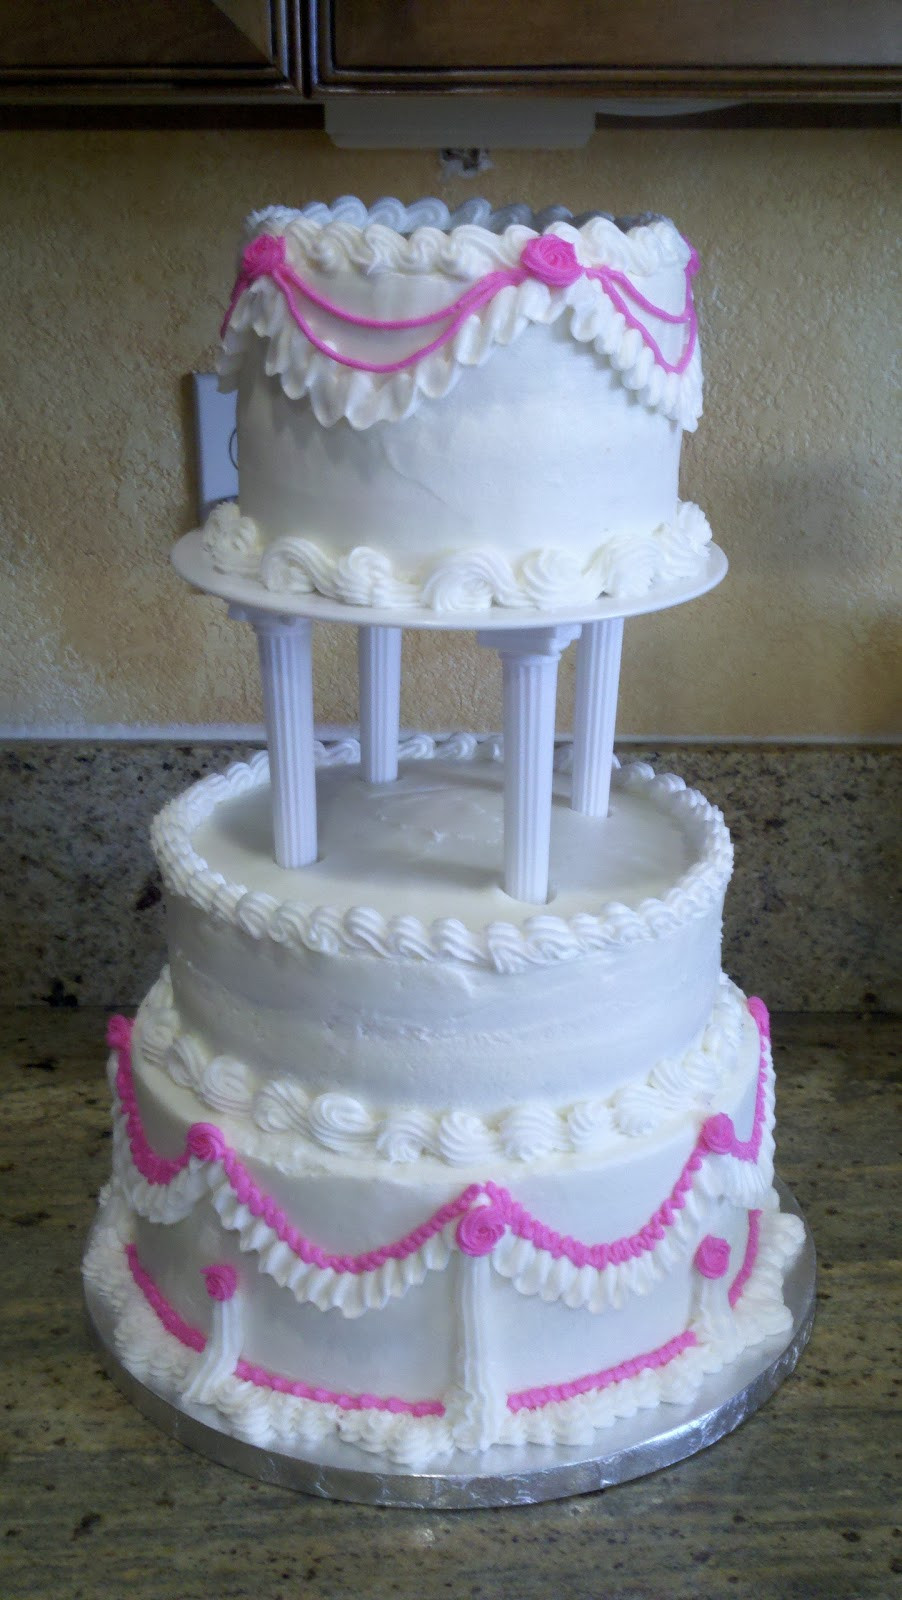 Old School Wedding Cakes  Sweet Cakes Wedding Cake Old School